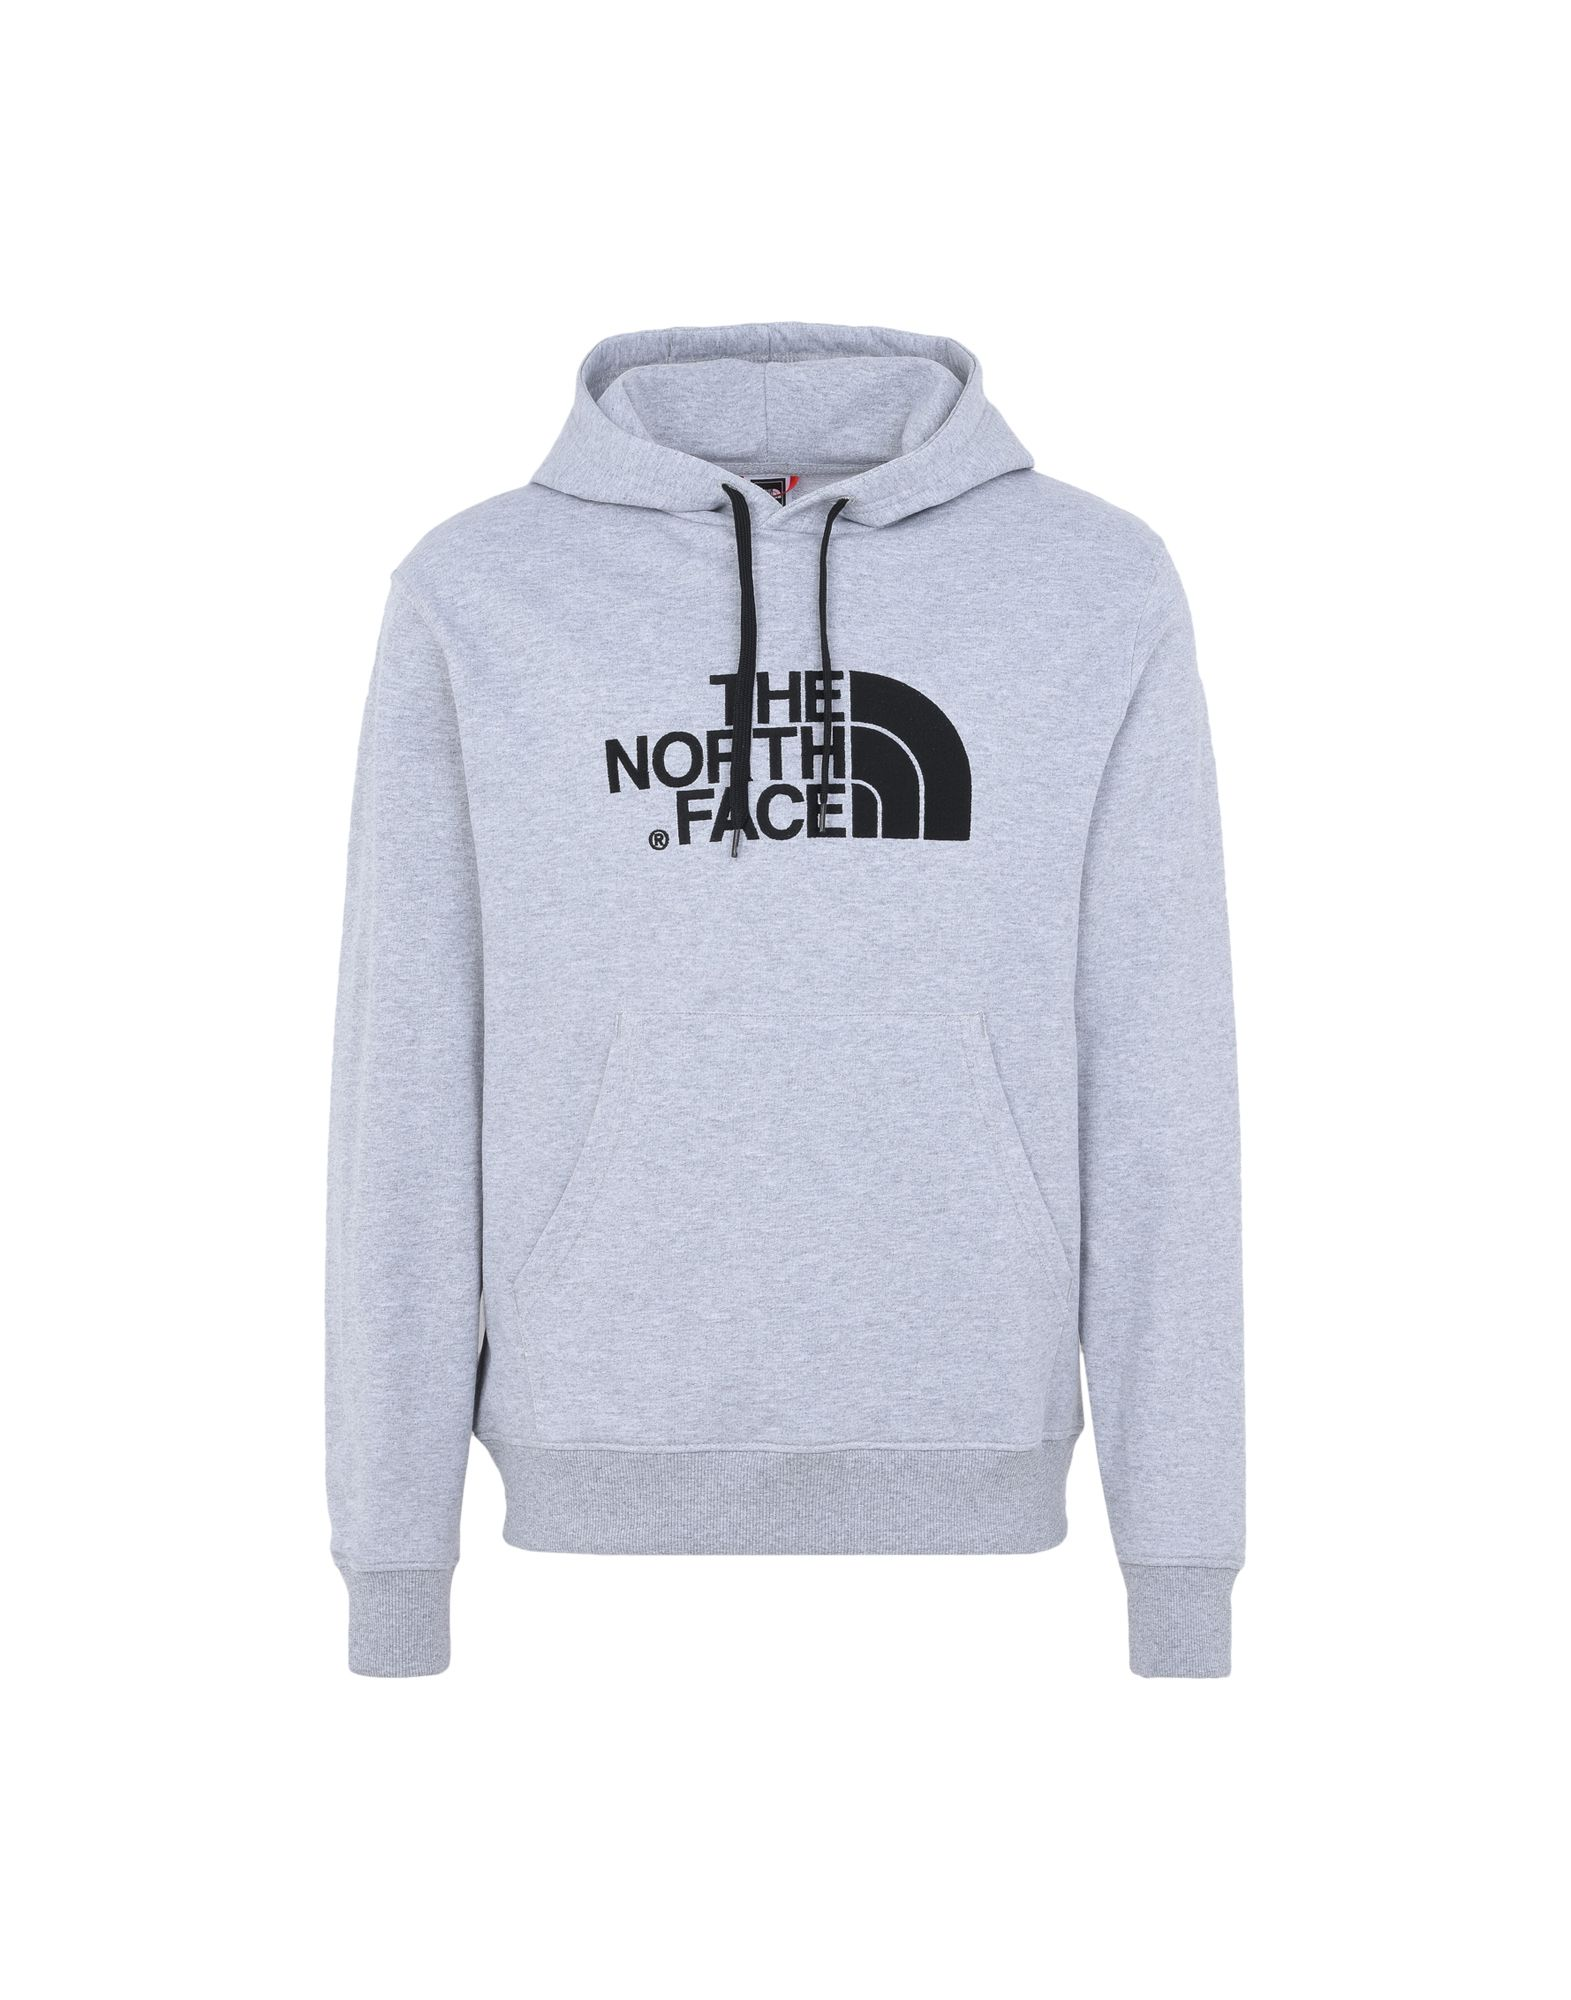 THE NORTH FACE Толстовка the north face толстовка